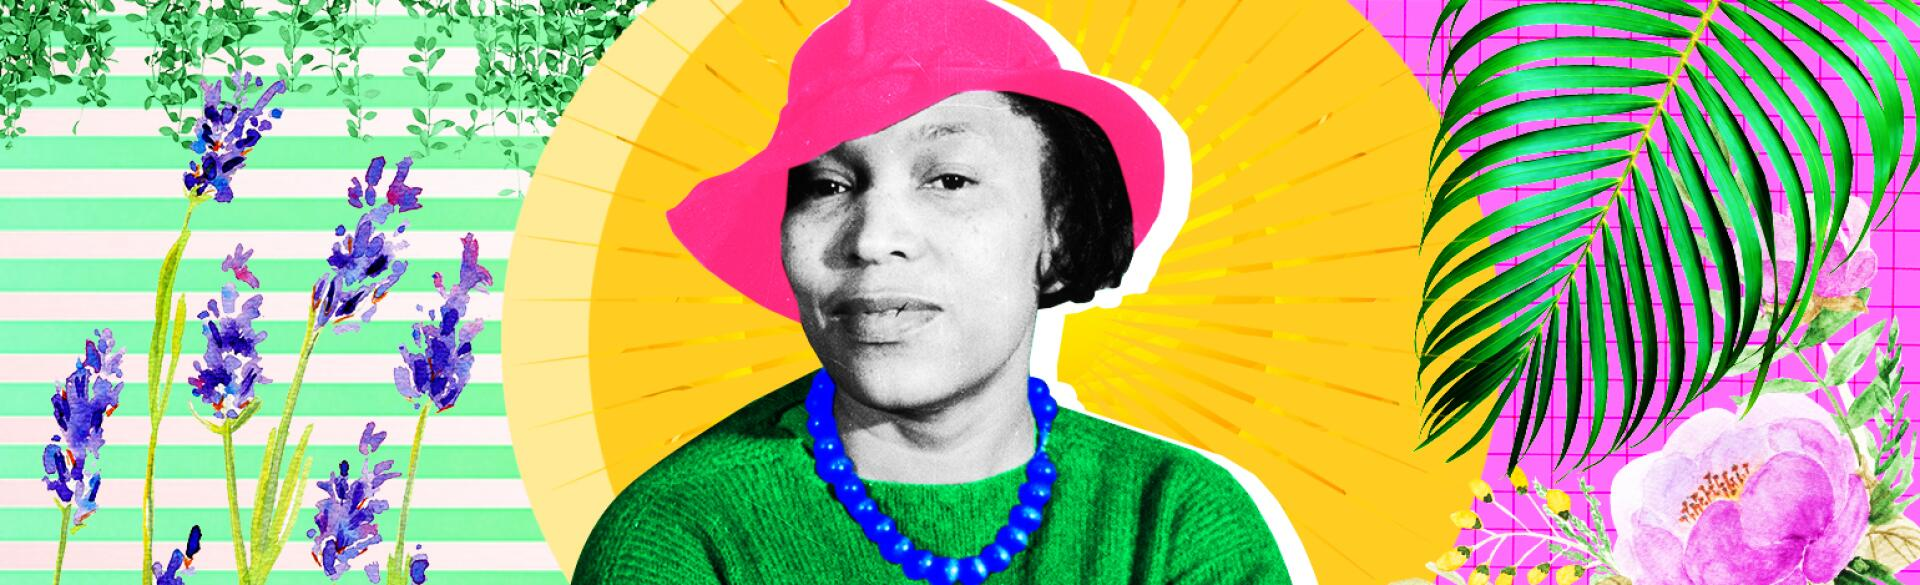 photo montage of zora neale hurston by lyne lucien